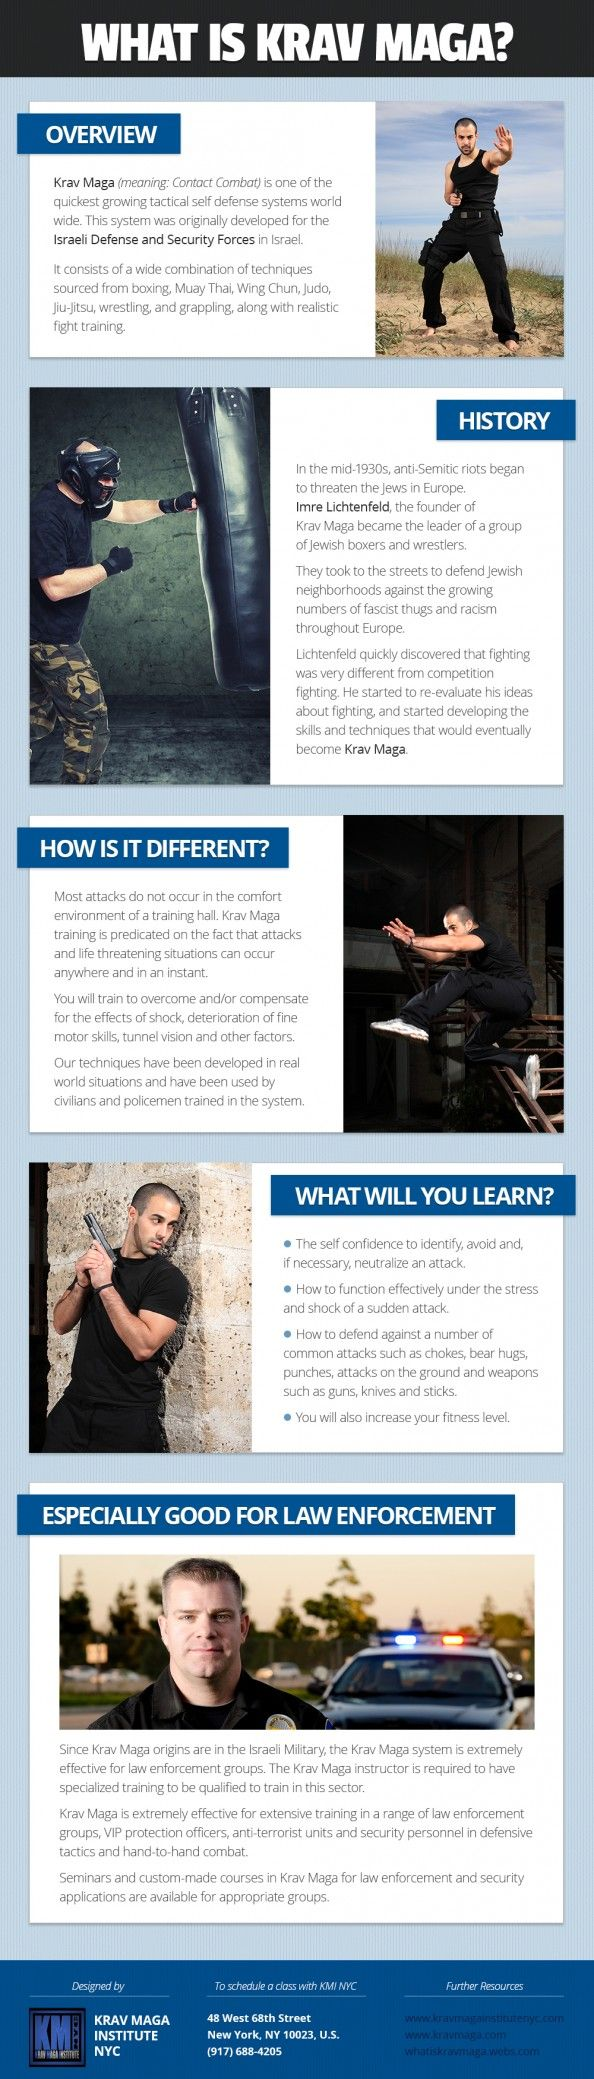 Krav Maga Self Defense System. I plan to enroll my girls in Krav Maga when they are in high school. I want them prepared for when they leave the nest.